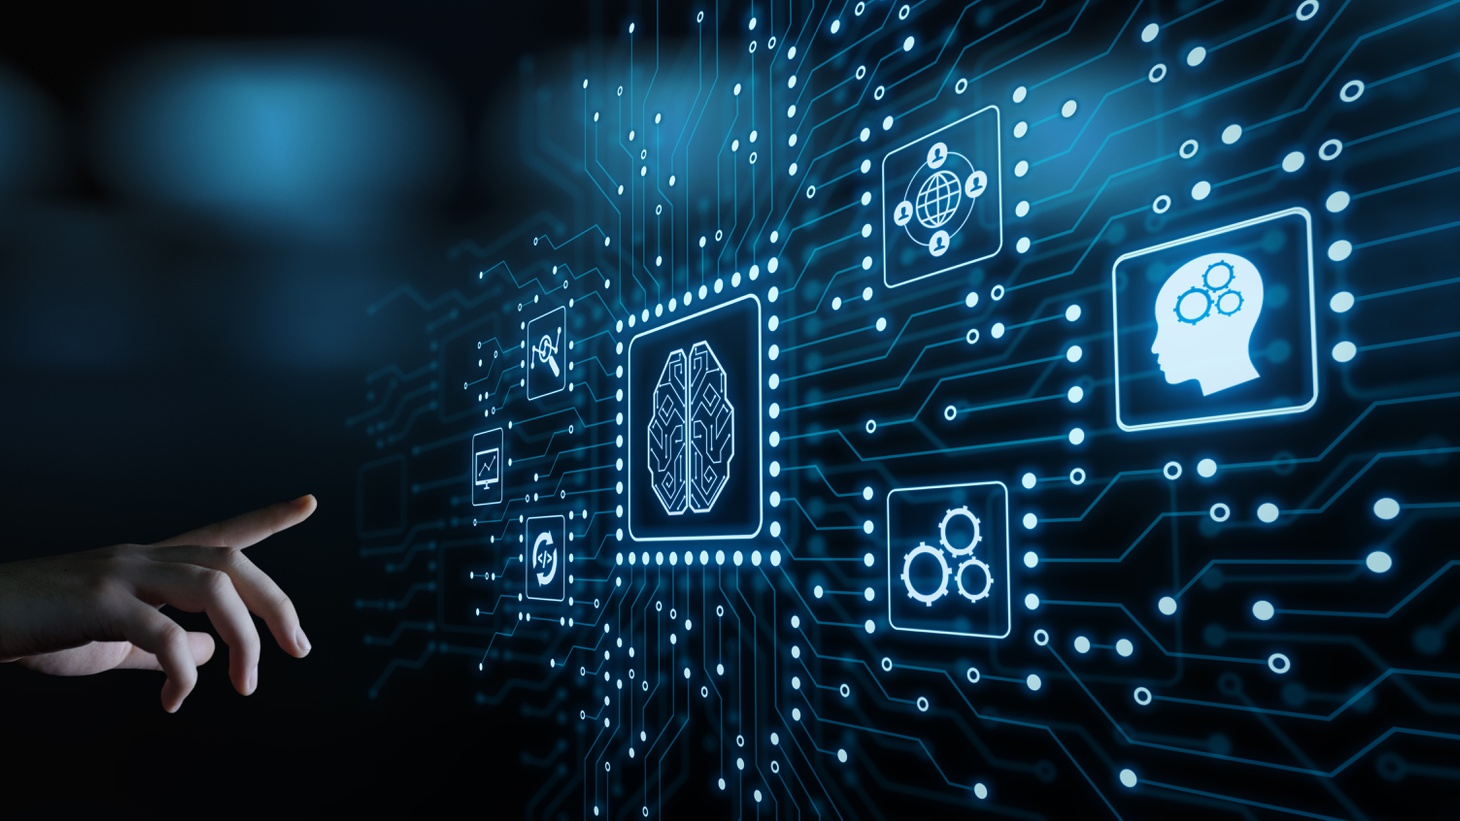 What are the challenges for the tech industry when it comes to answering deeper questions on faith, humanity, and the meaning of life? Especially when it comes to artificial intelligence?